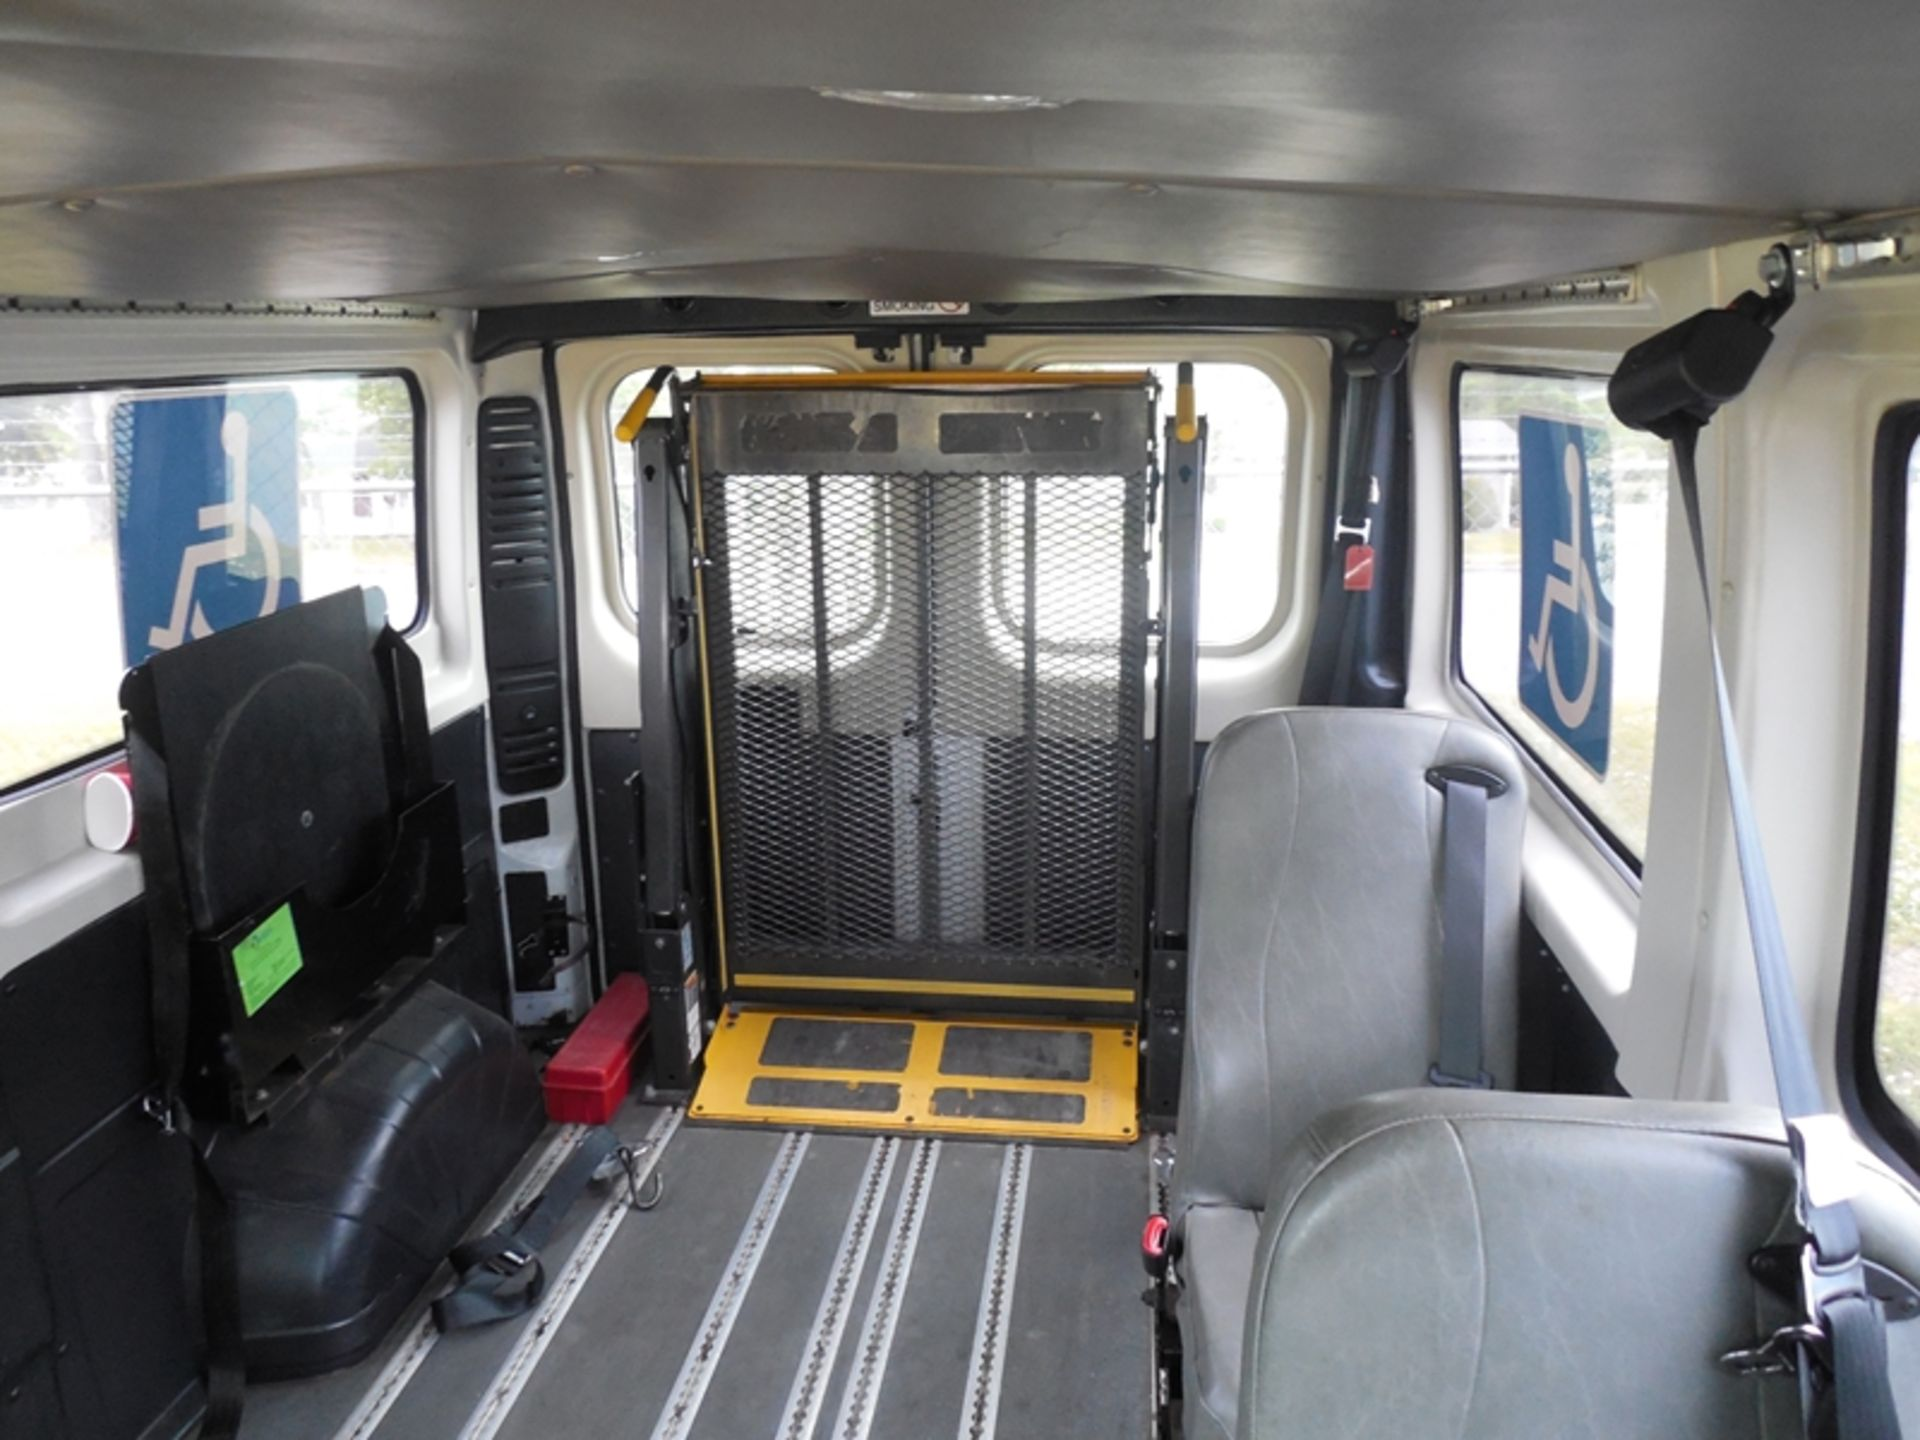 2014 Dodge Promaster wheel chair van - Image 6 of 6